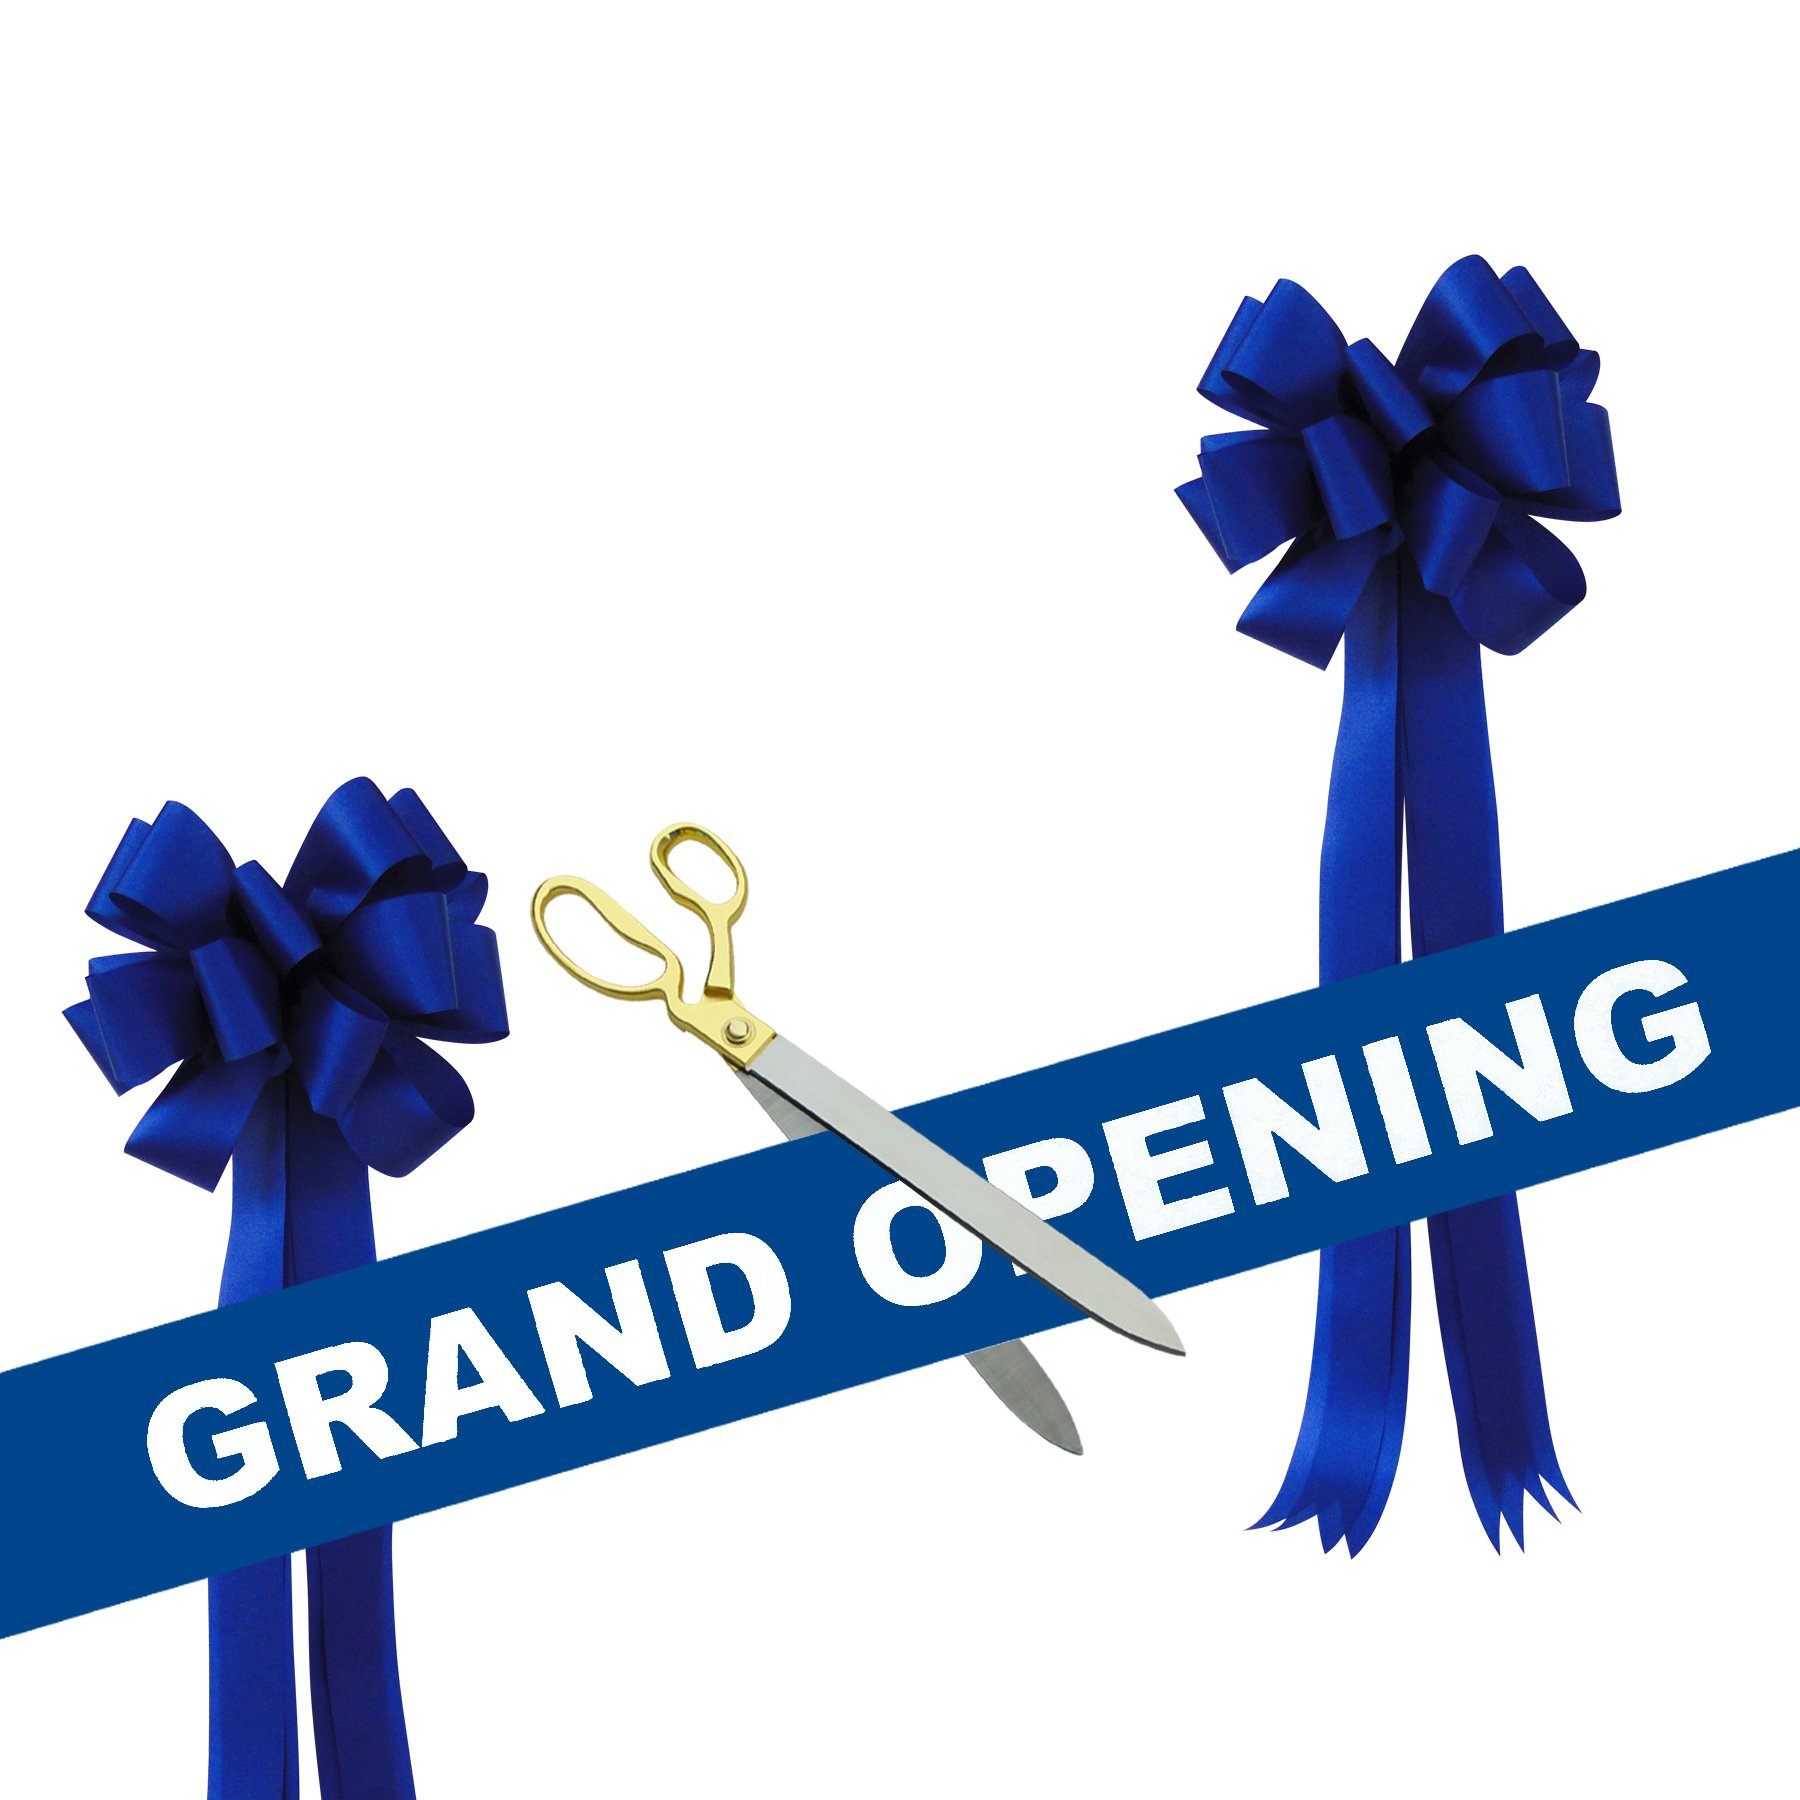 Grand Opening Kit - 20'' Gold Plated Handles Ceremonial Ribbon Cutting Scissors with 5 yards of 6'' Blue Grand Opening Ribbon White Letters and 2 Royal Blue Bows